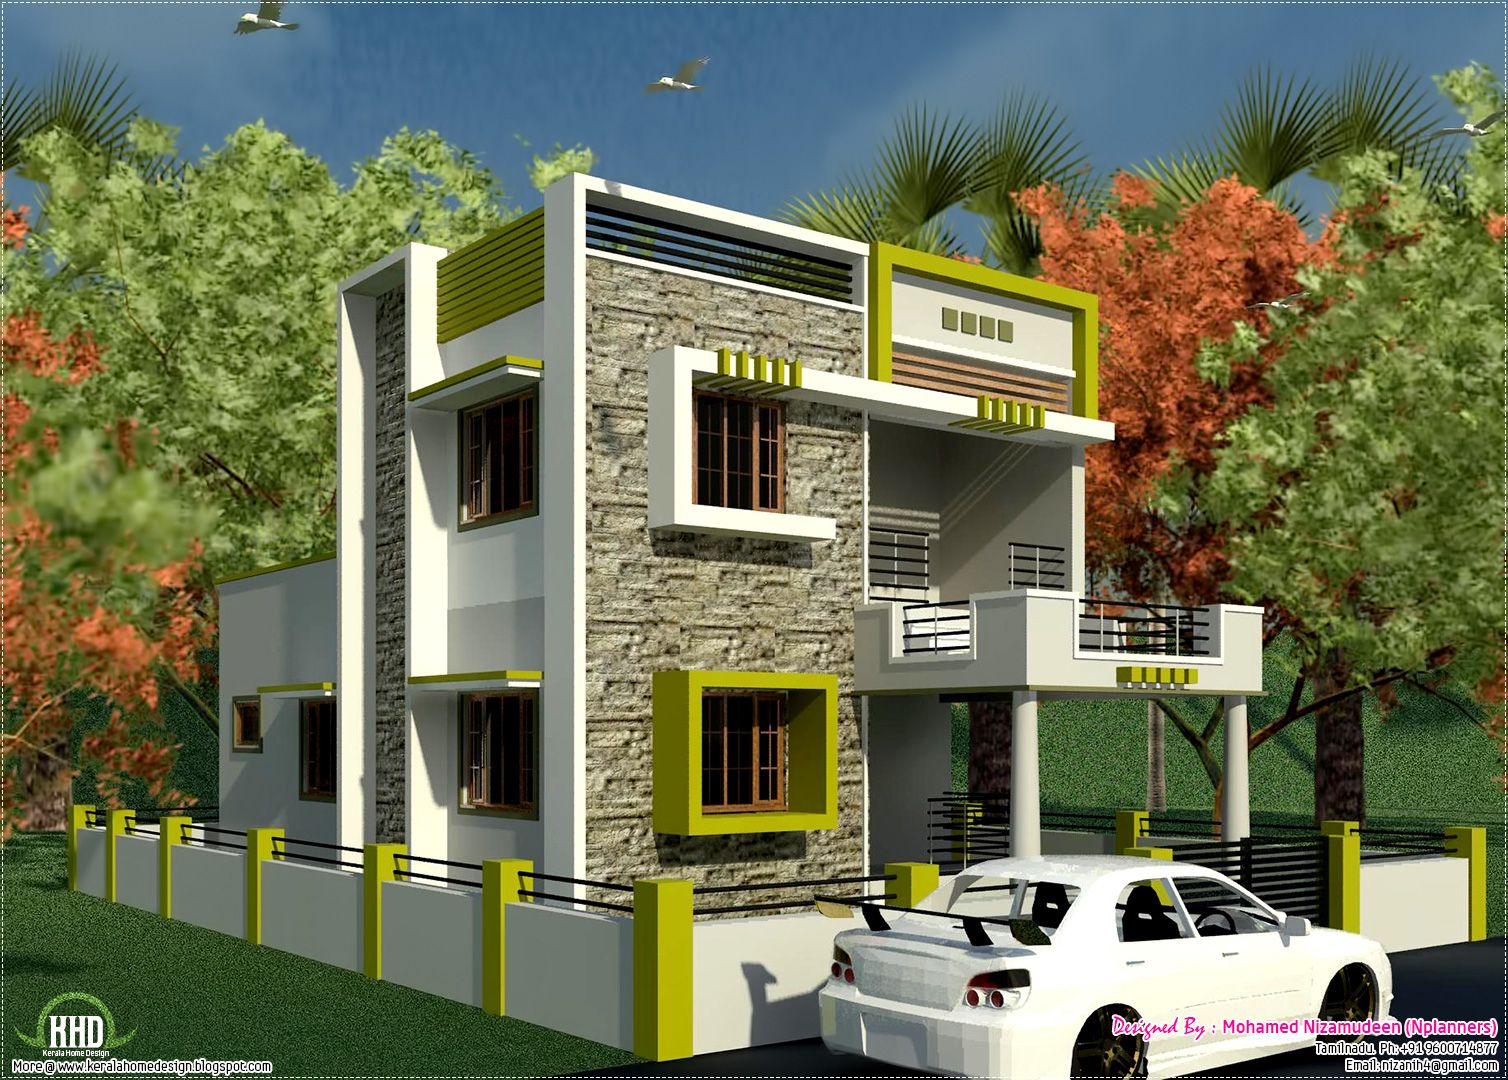 Small house with car park design tobfav com ideas for for Home front design in indian style